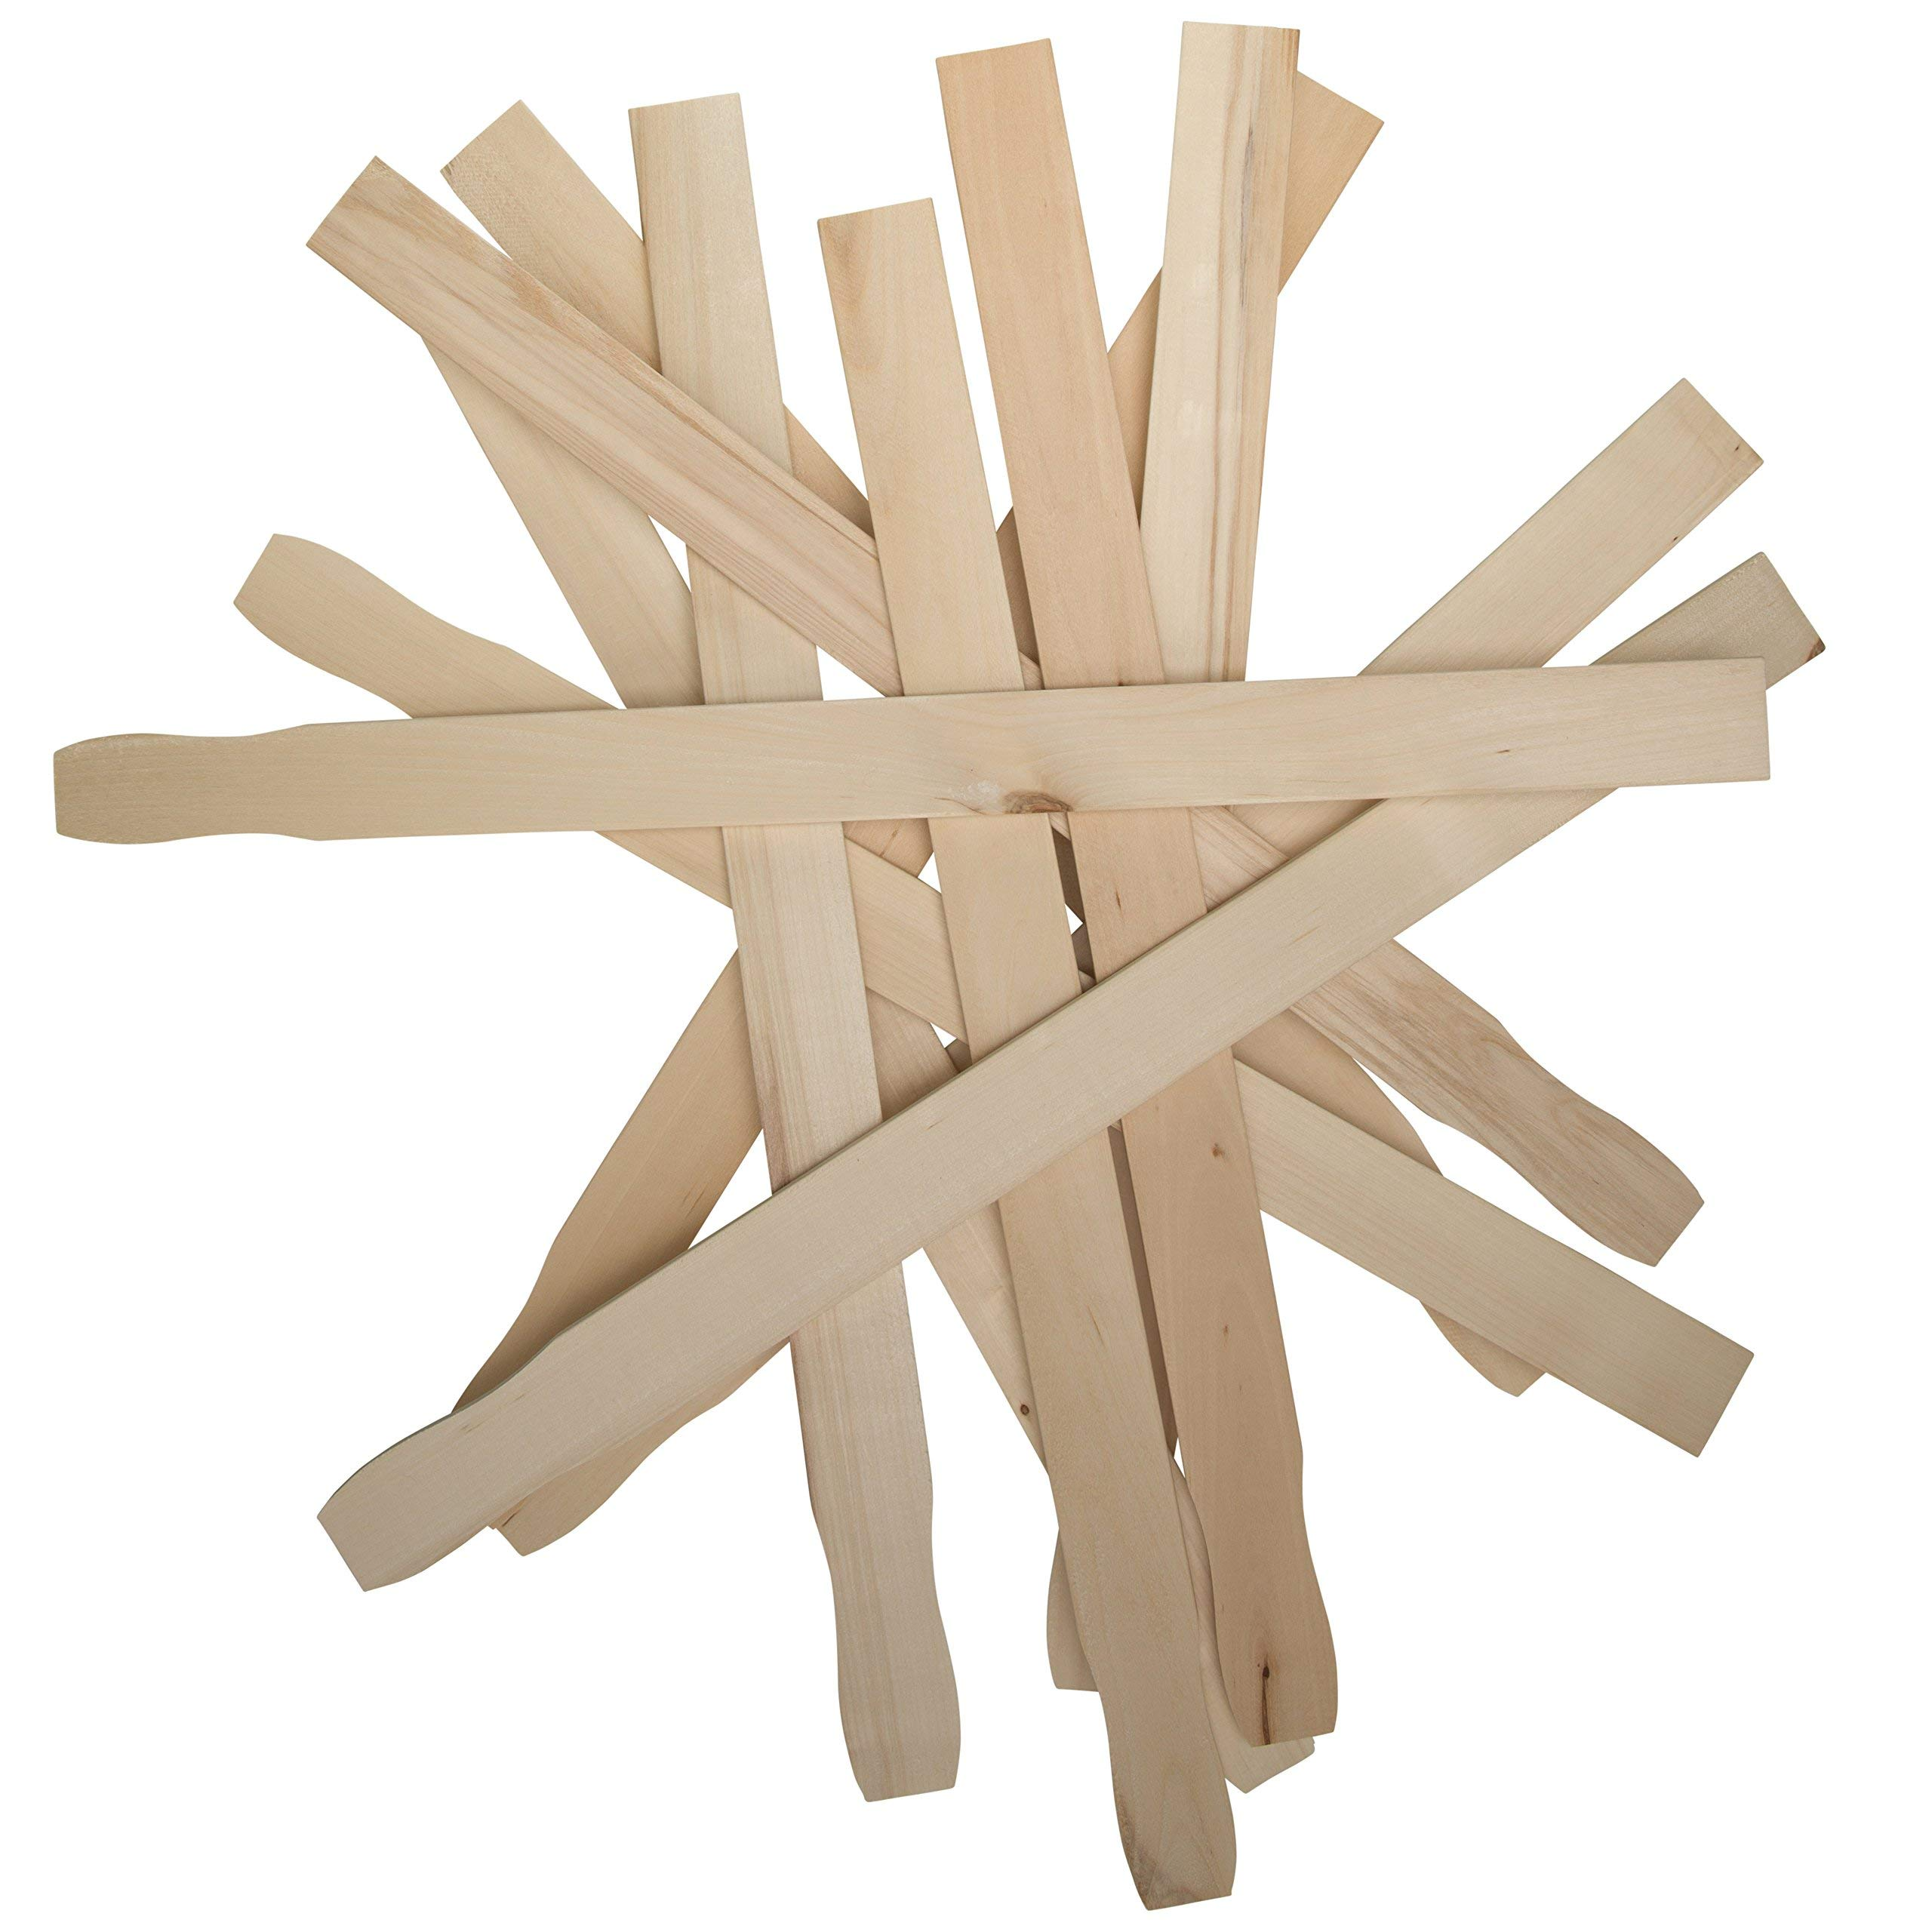 14 Inch Paint Sticks, Box of 100 Sanded Hardwood Paint Stirrers for Wax, Mix Epoxy, Resin or Kids Wood Crafts, Garden and Library Markers by Woodpeckers